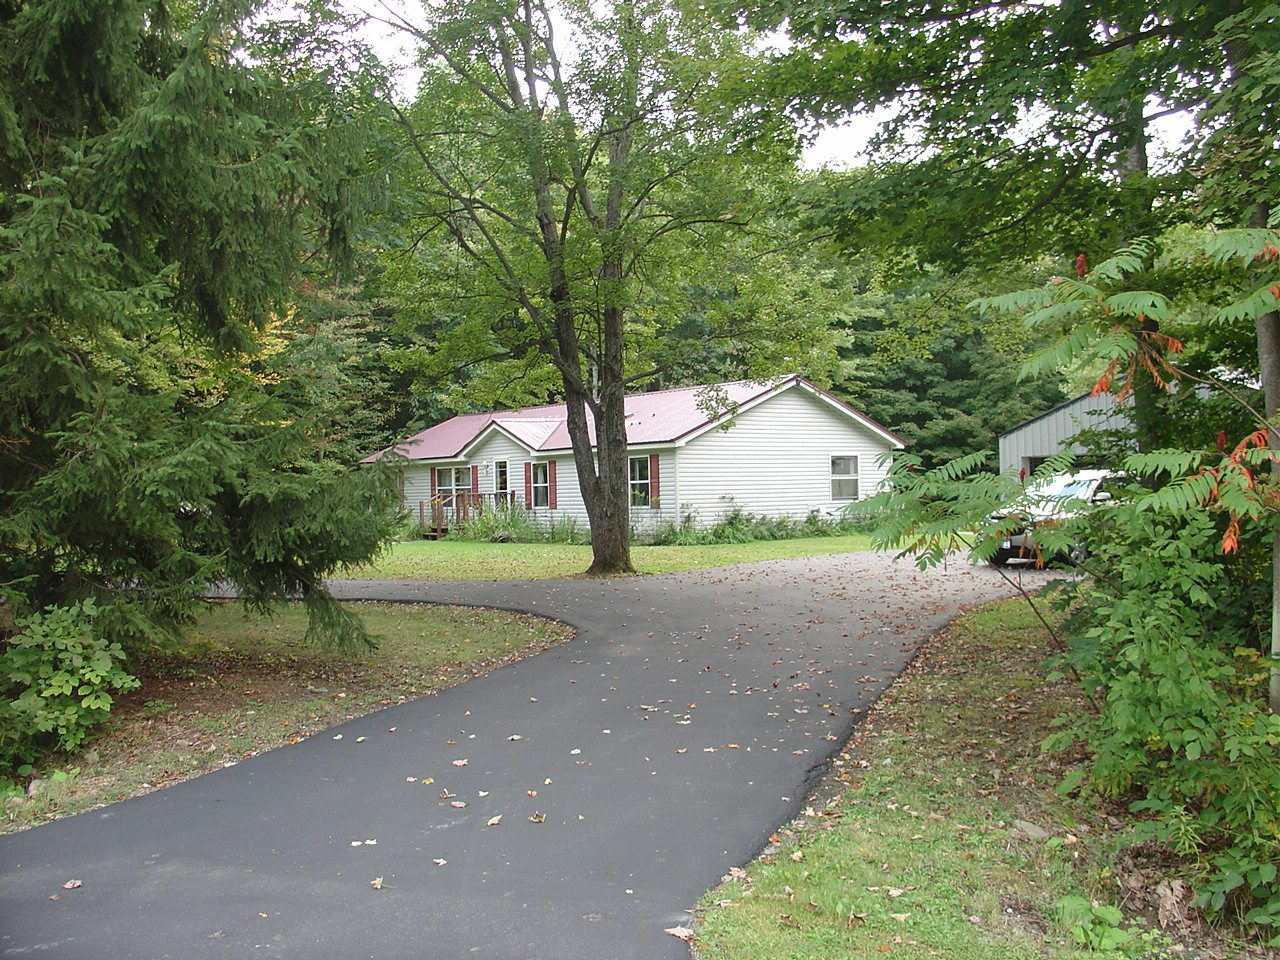 from end of driveway